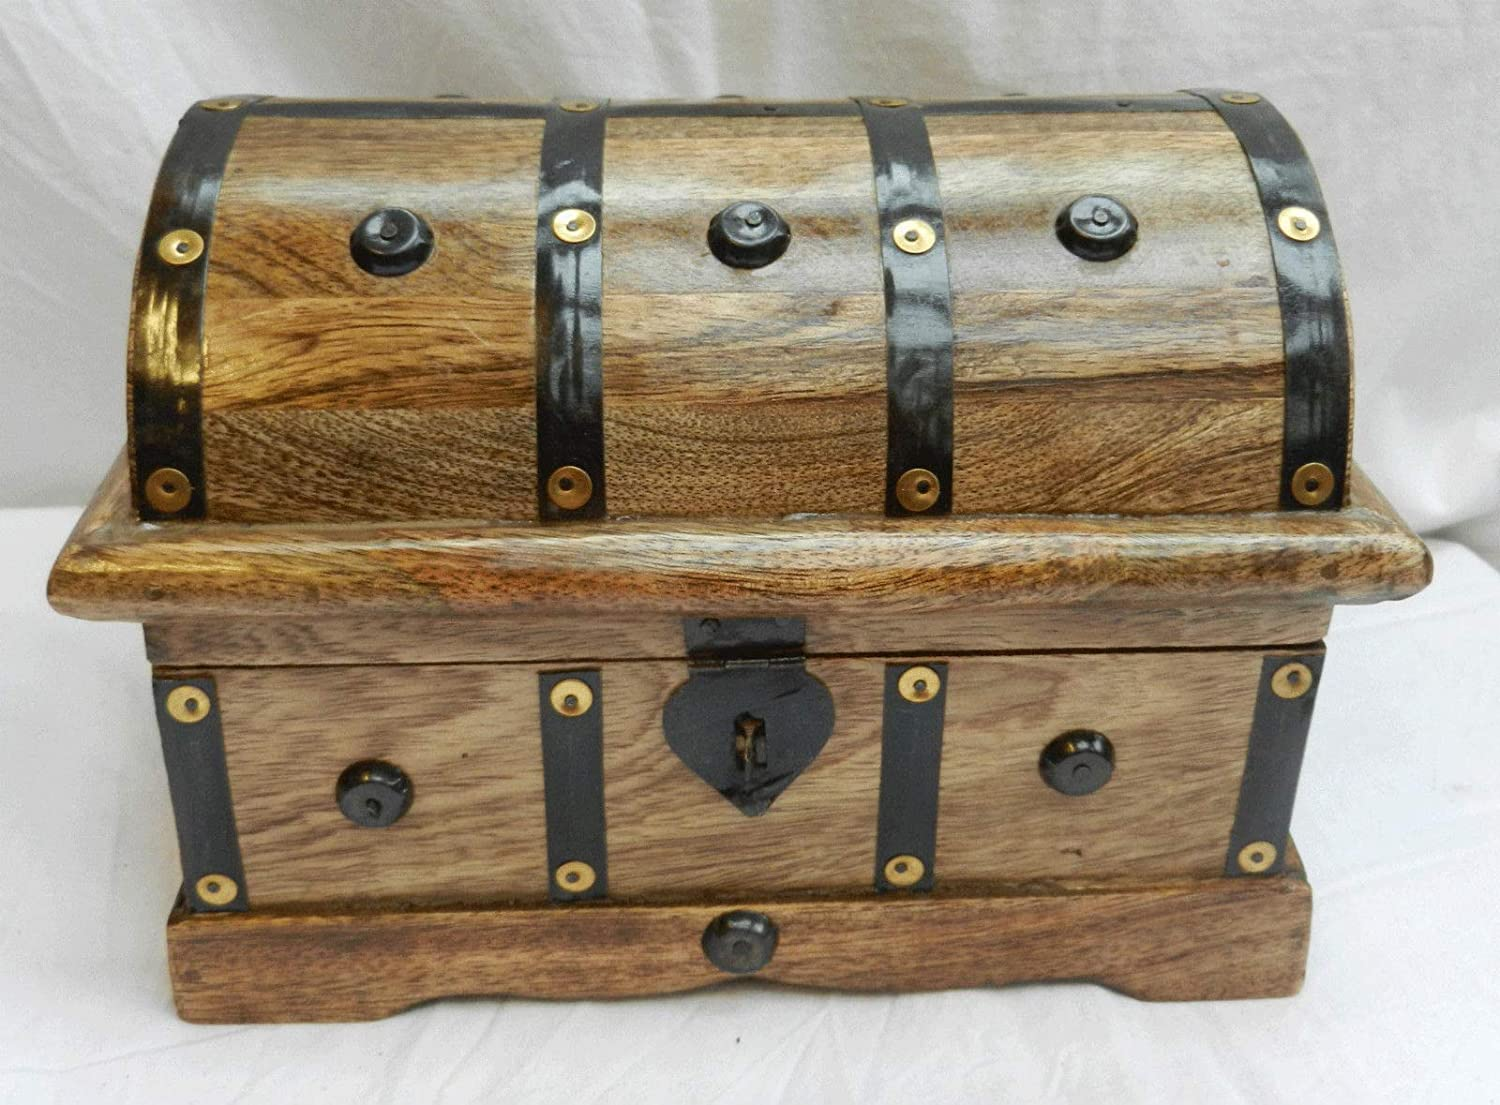 Pirate Treasure Chest Large Metal Bound Wooden Cabin Trunk New Storage Box